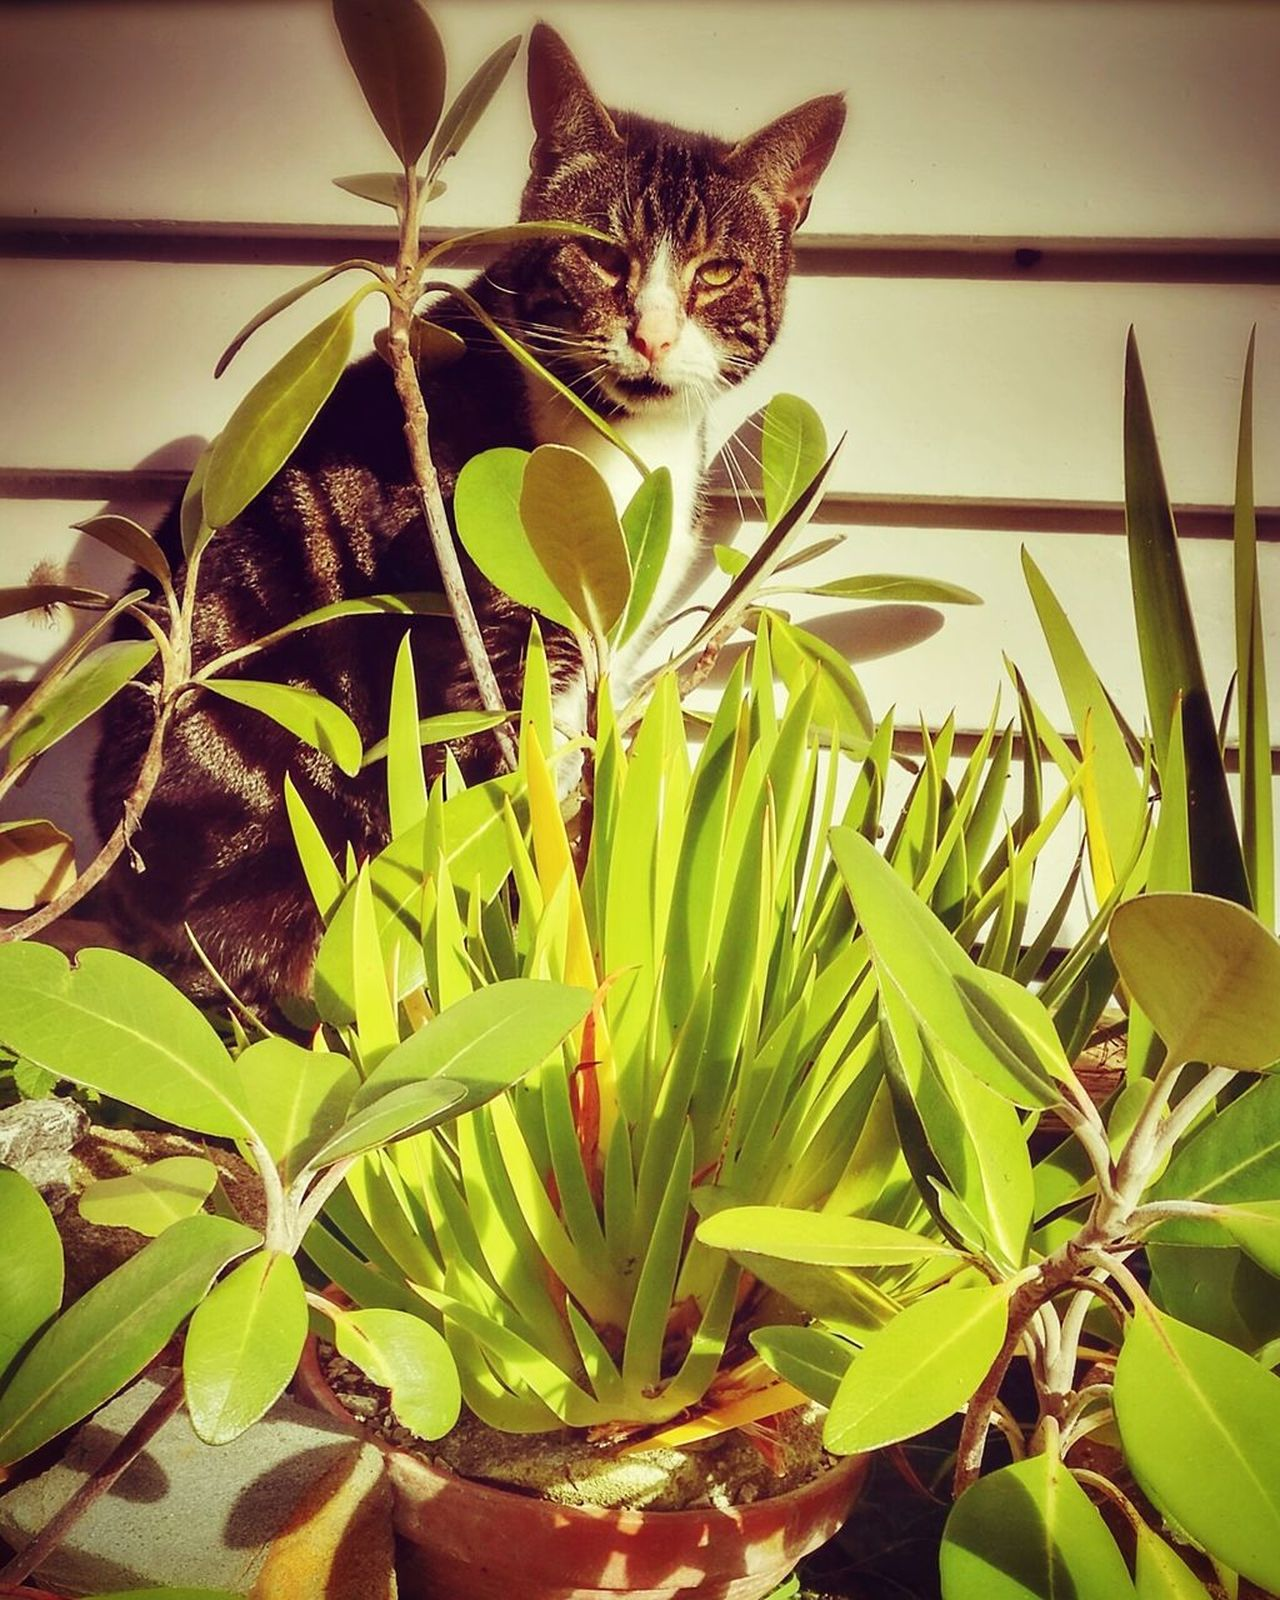 Pussy.. Cat Potted Plants Sunlight Garden Porirua Autumn Leaf Nature Growth Plant No People Close-up Day Beauty In Nature Indoors  Animal Themes Freshness HuaweiP9